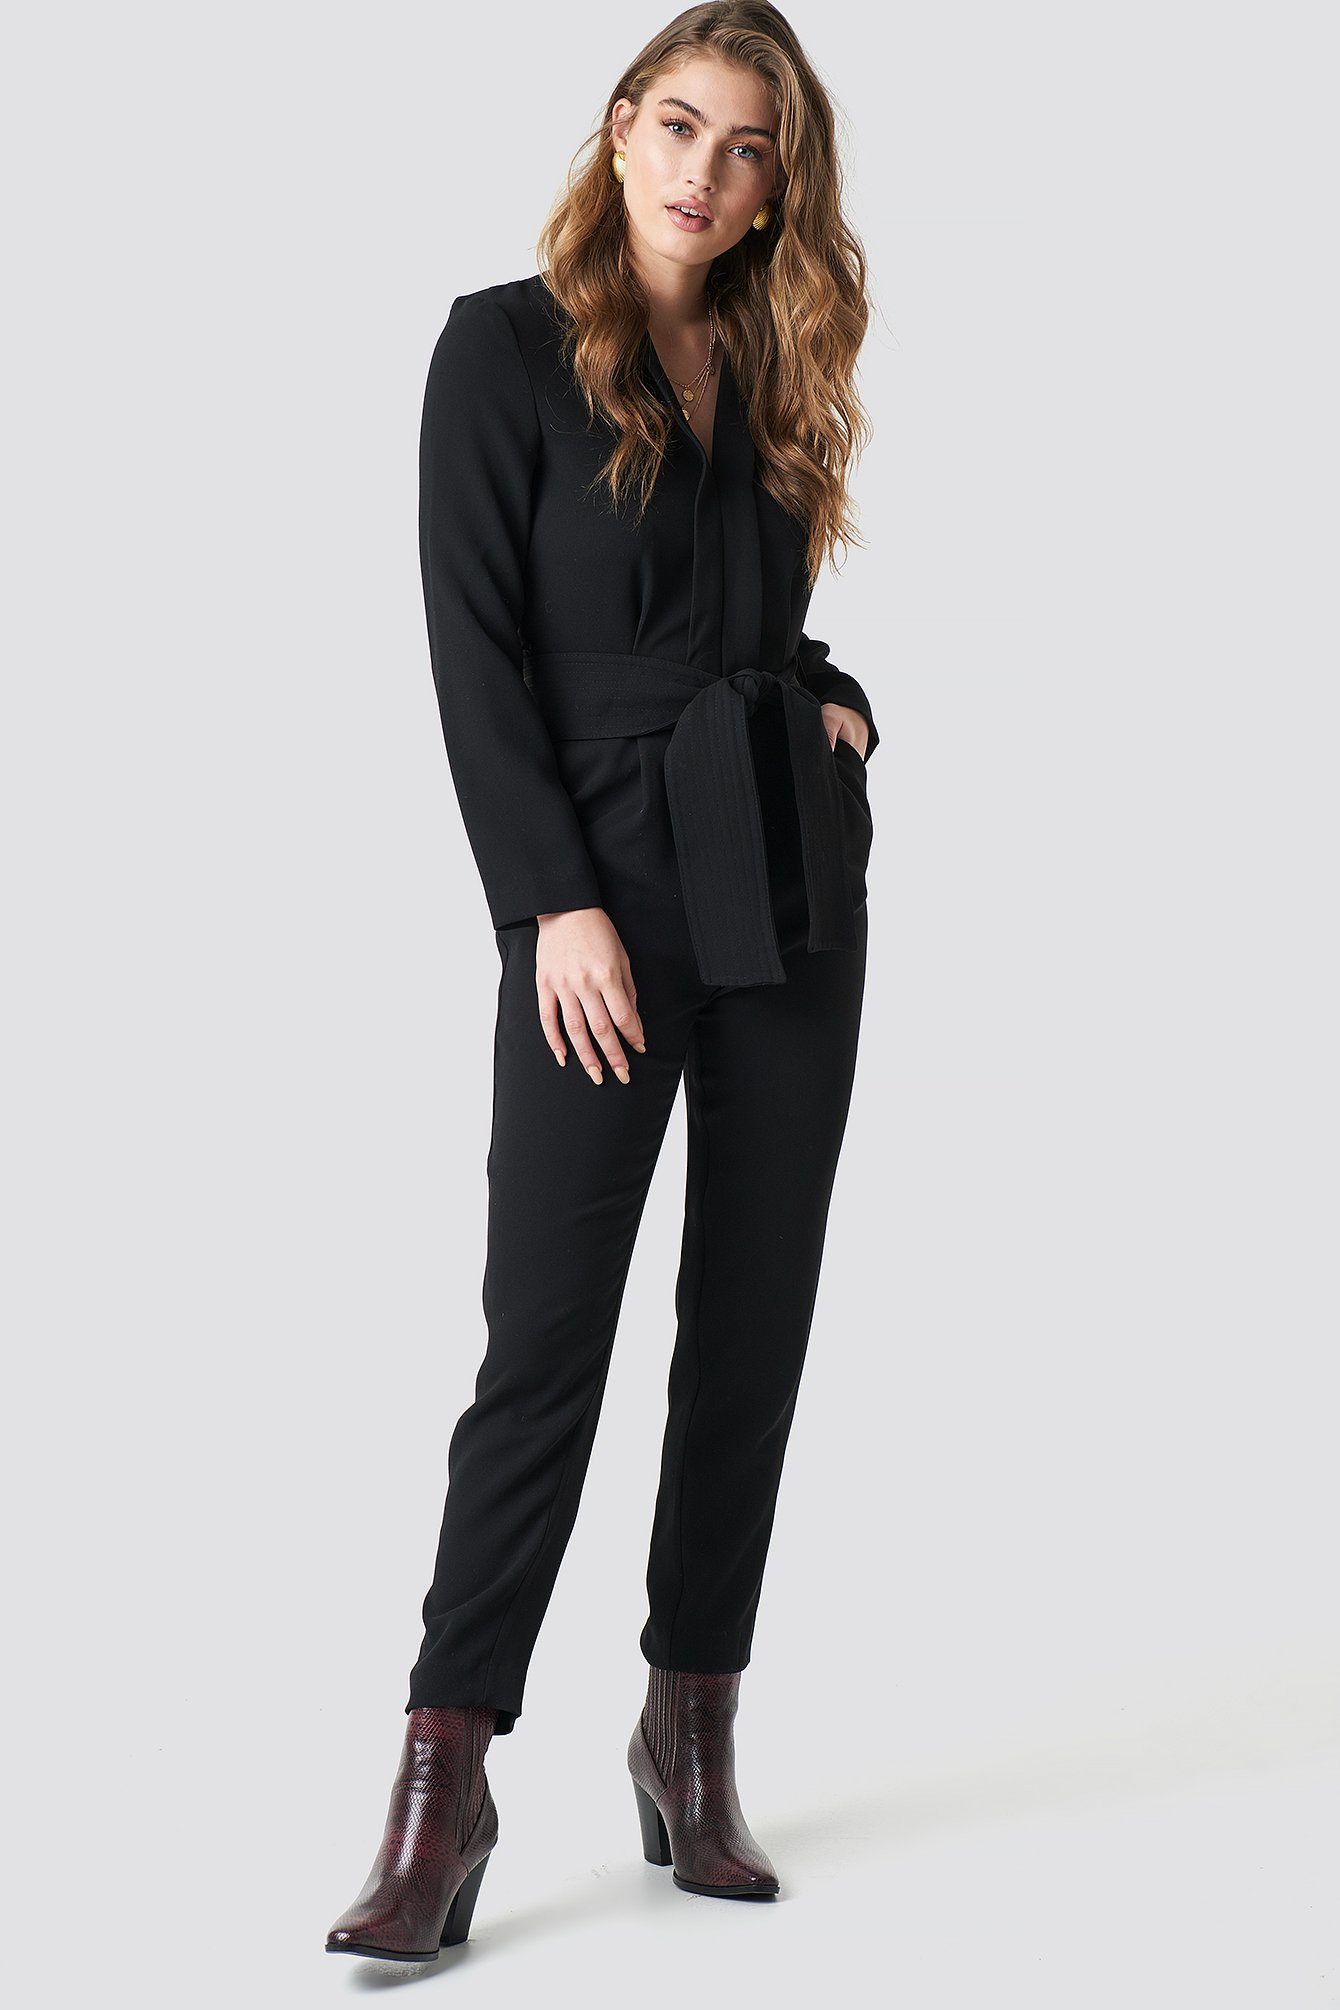 Marin One-Piece Suit NA-KD.COM